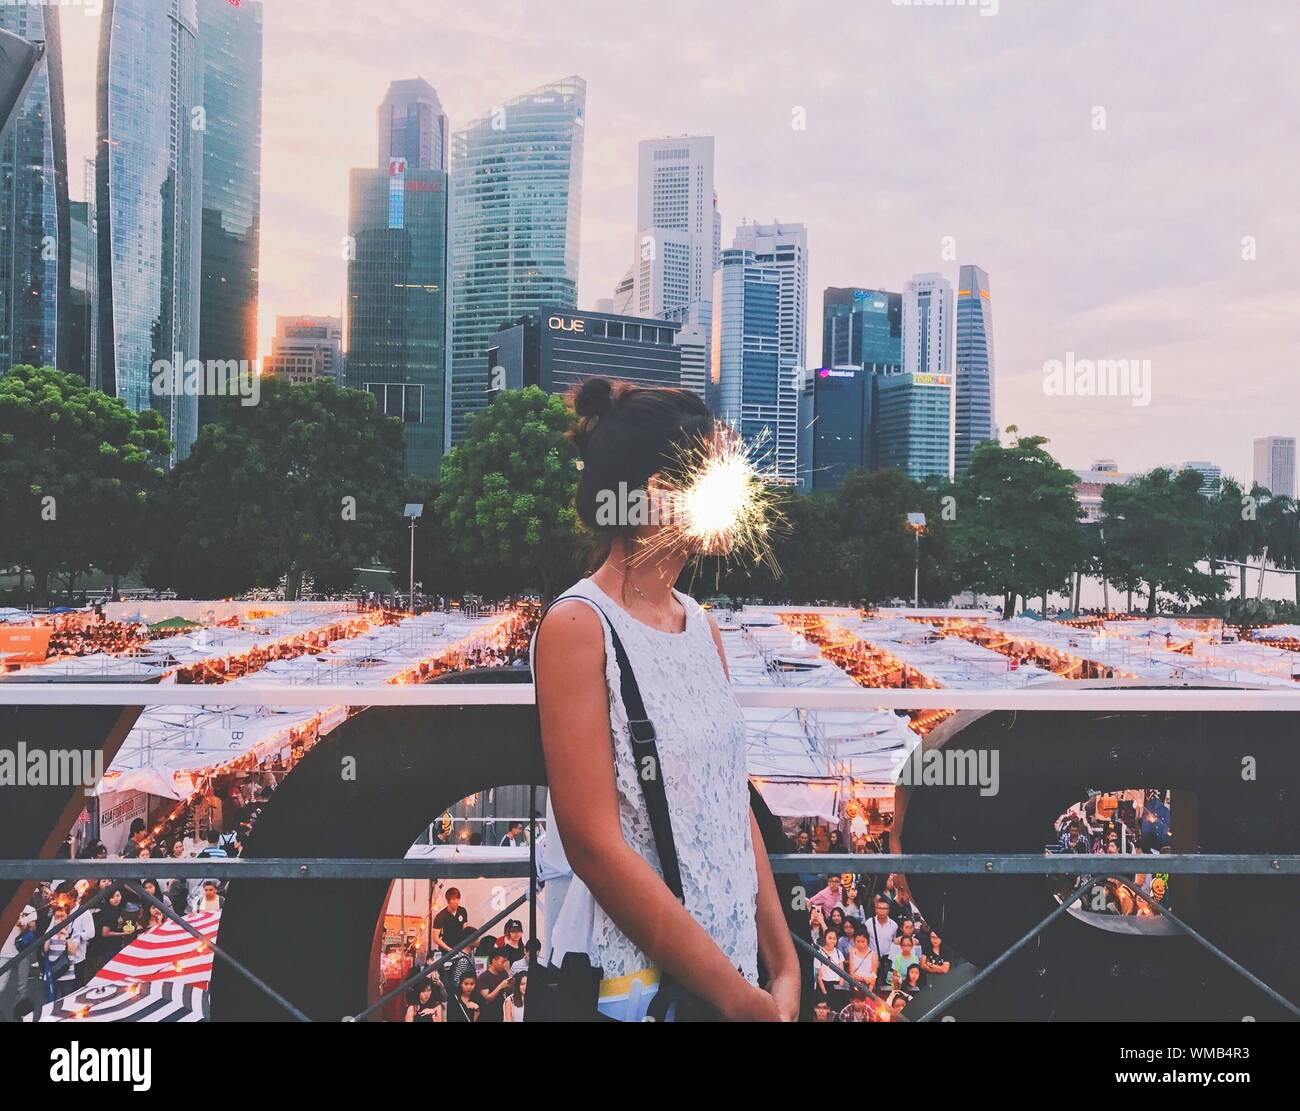 Digital Composite Image Of Firework Exploding On Woman Face In City During Event Stock Photo